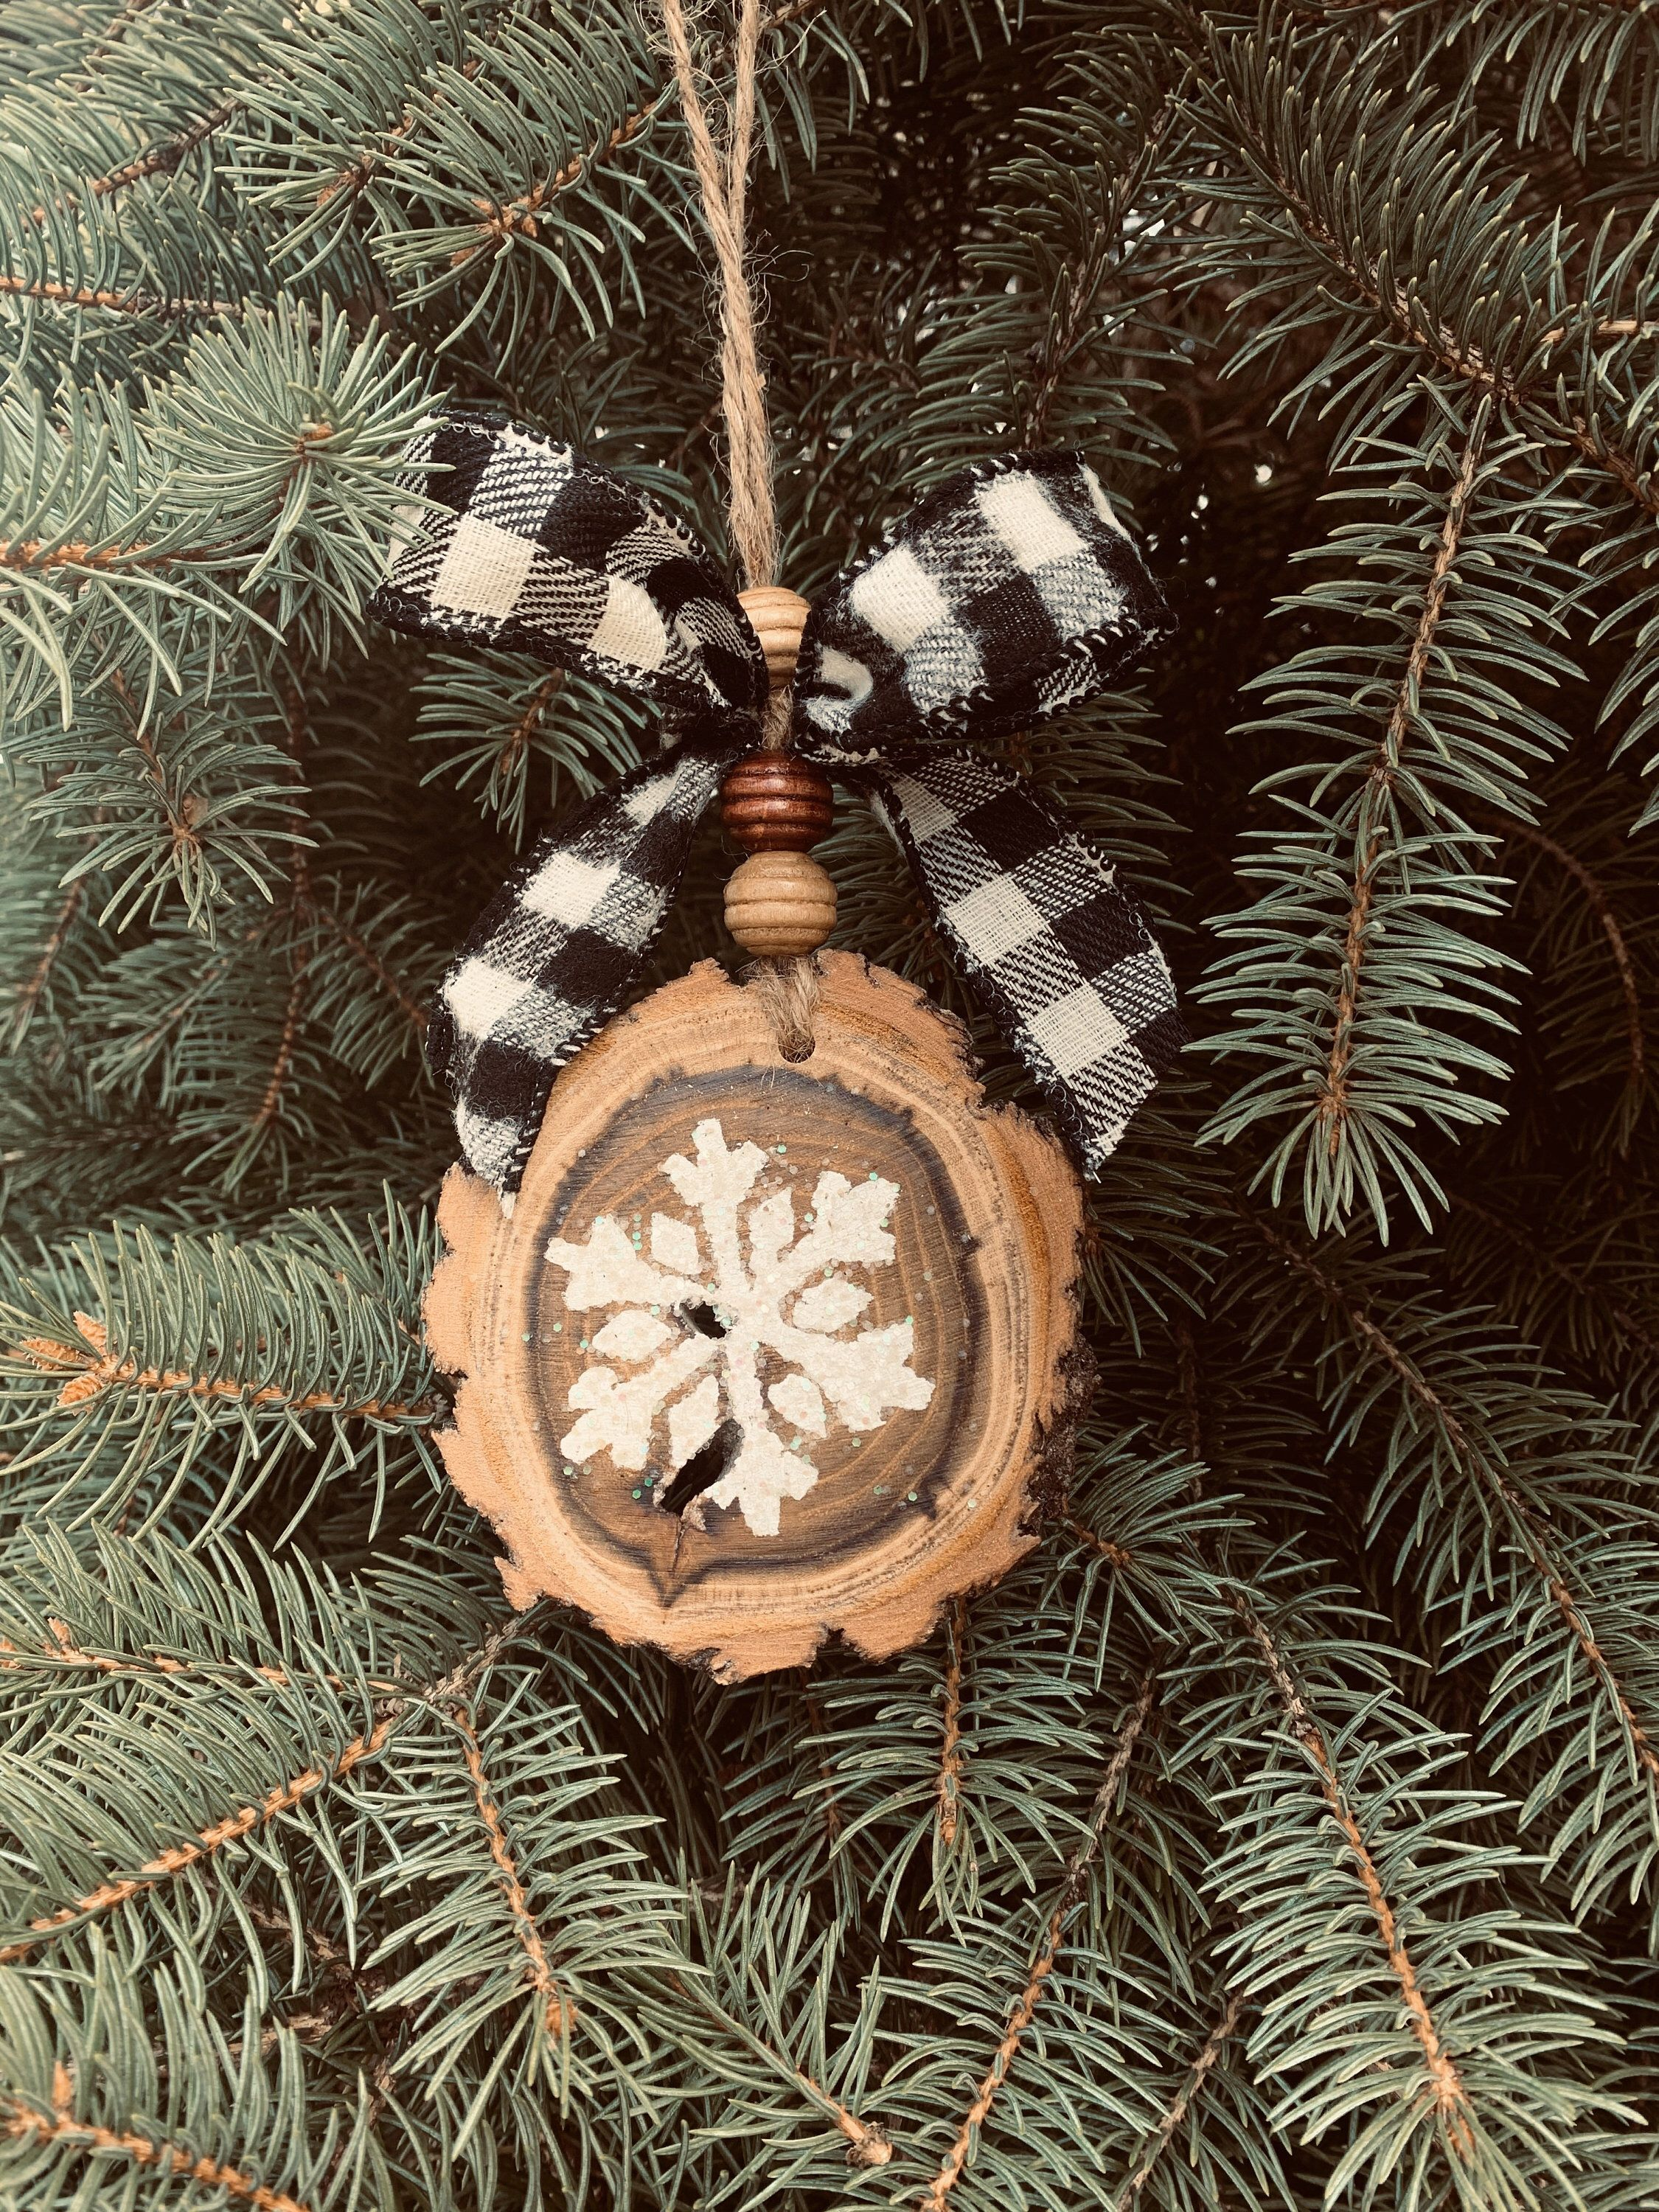 Wood Slice Christmas Ornament Rustic Decor Farmhouse Etsy In 2020 Farmhouse Christmas Ornaments Wood Christmas Ornaments Christmas Ornaments